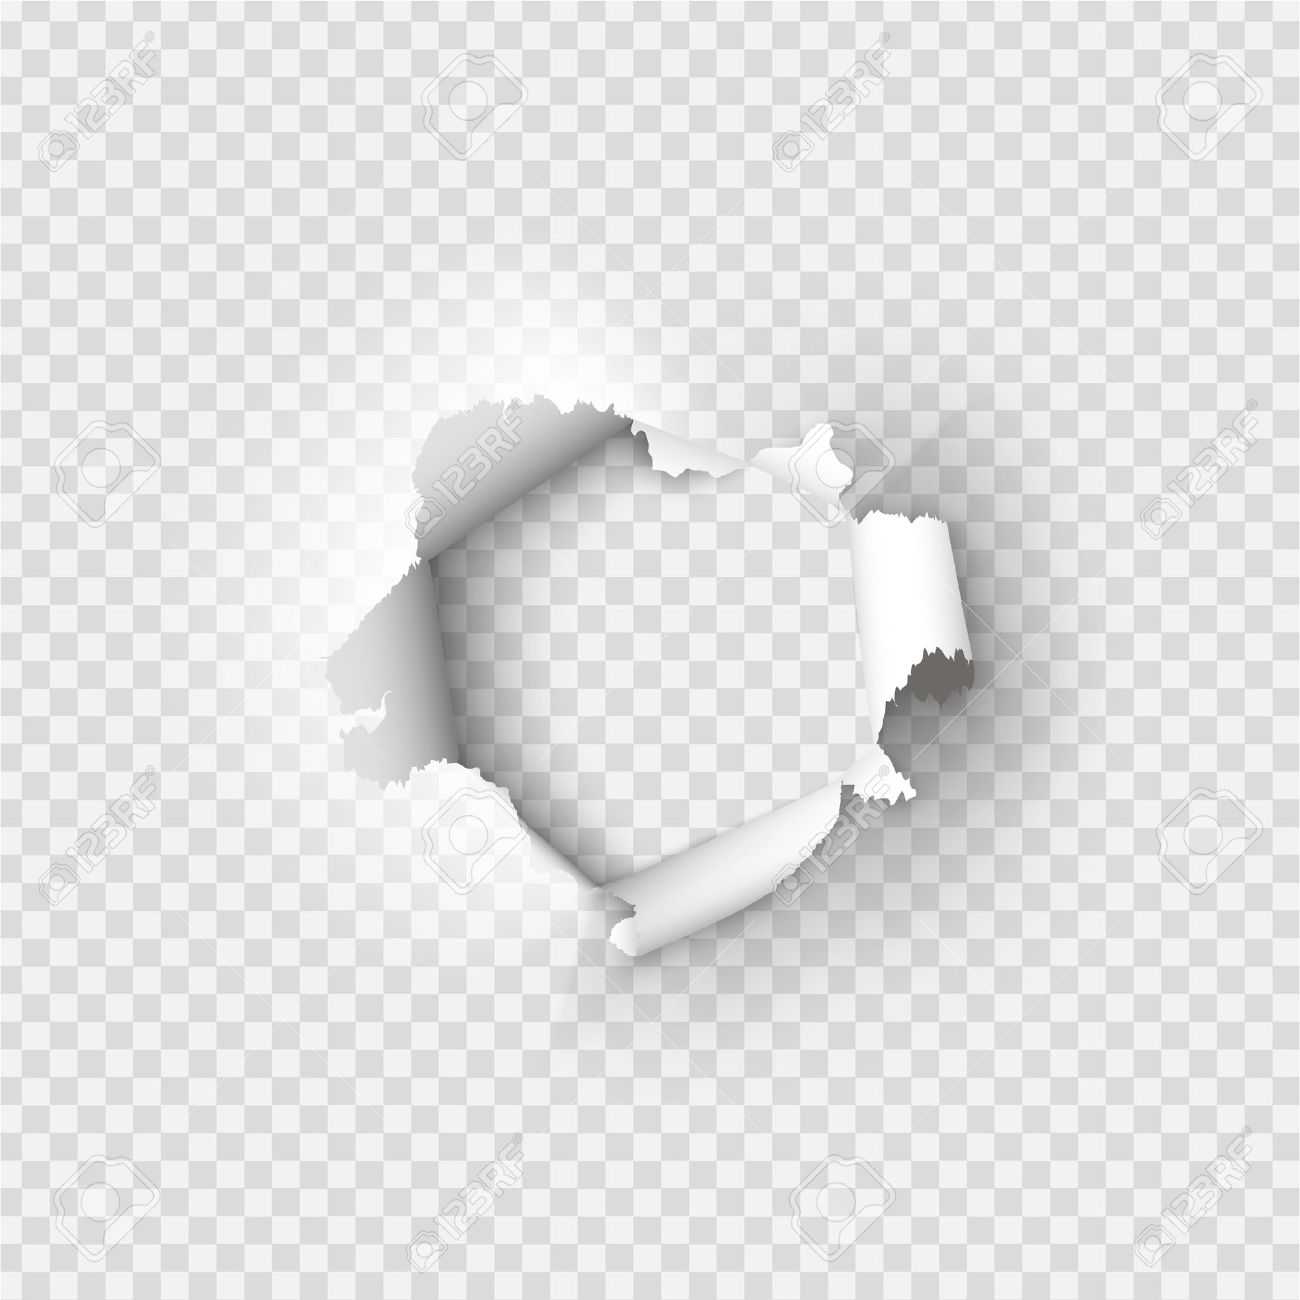 Holes torn in paper on transparent background - 78092294